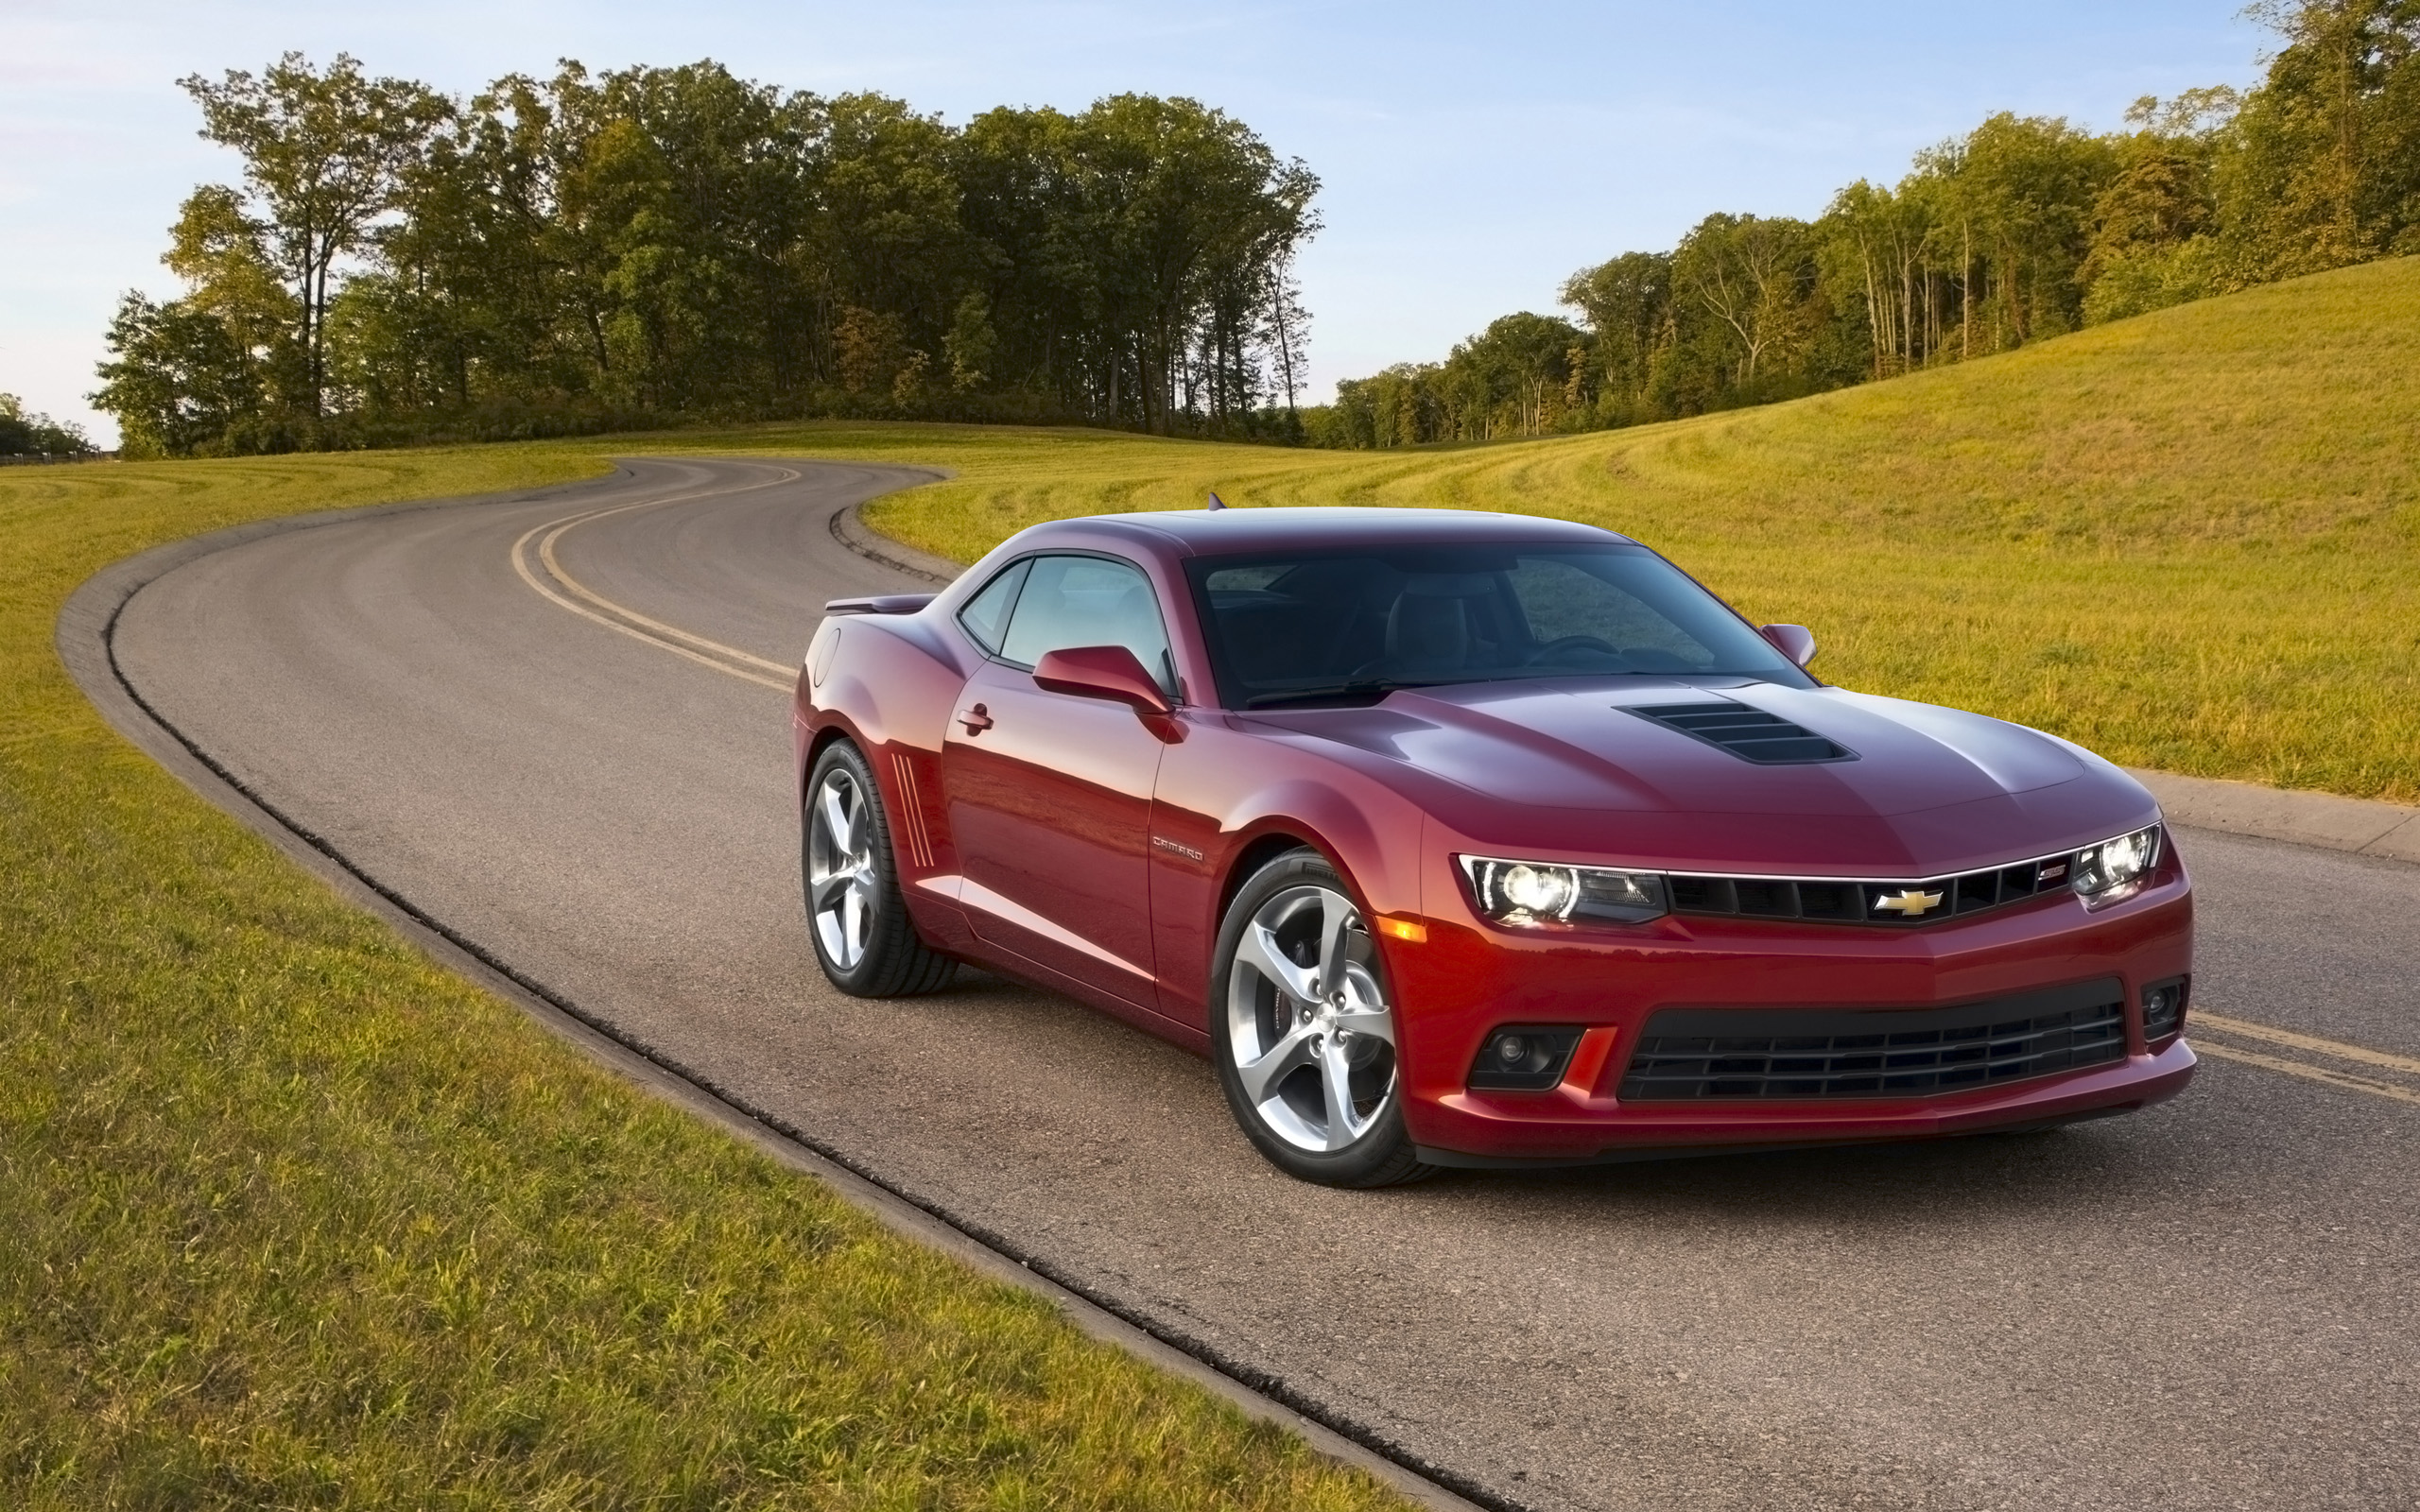 2015 Chevrolet Camaro SS Coupe Wallpaper HD Car Wallpapers 2560x1600